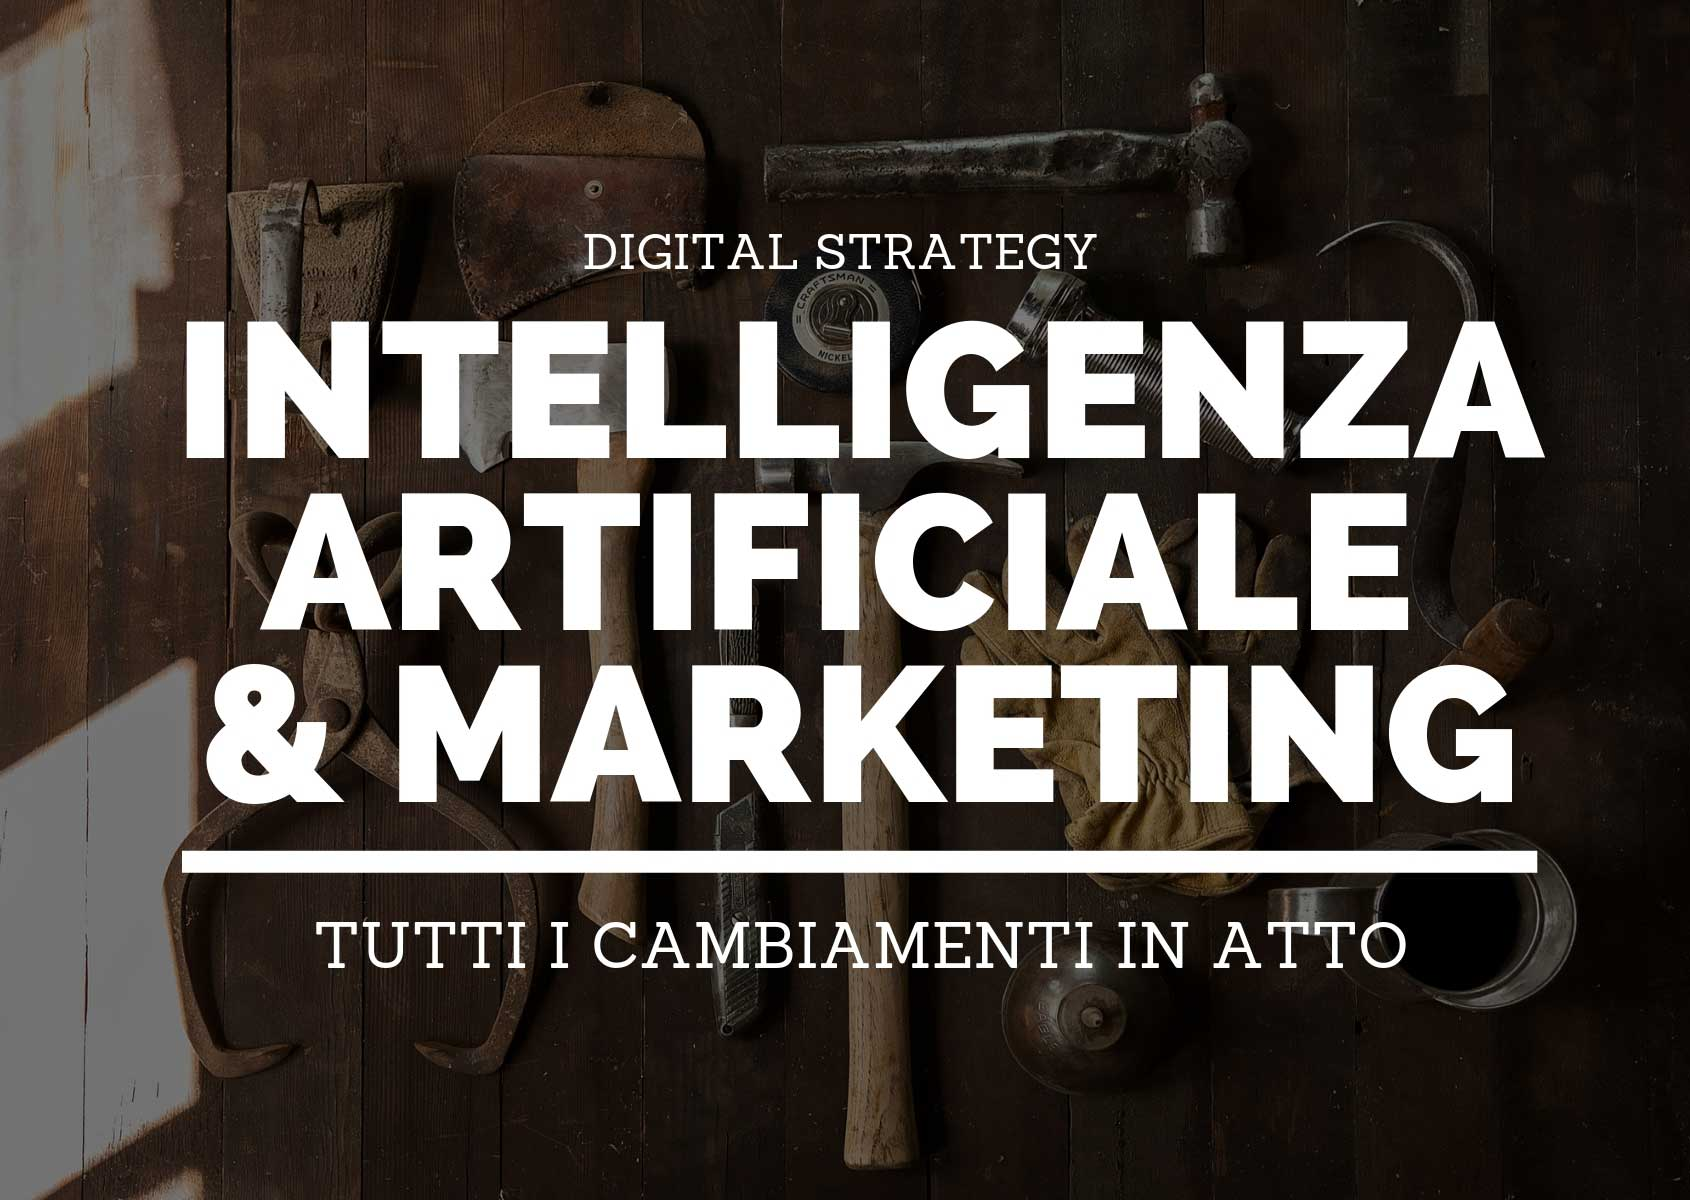 Come l'intelligenza artificiale sta cambiando il marketing